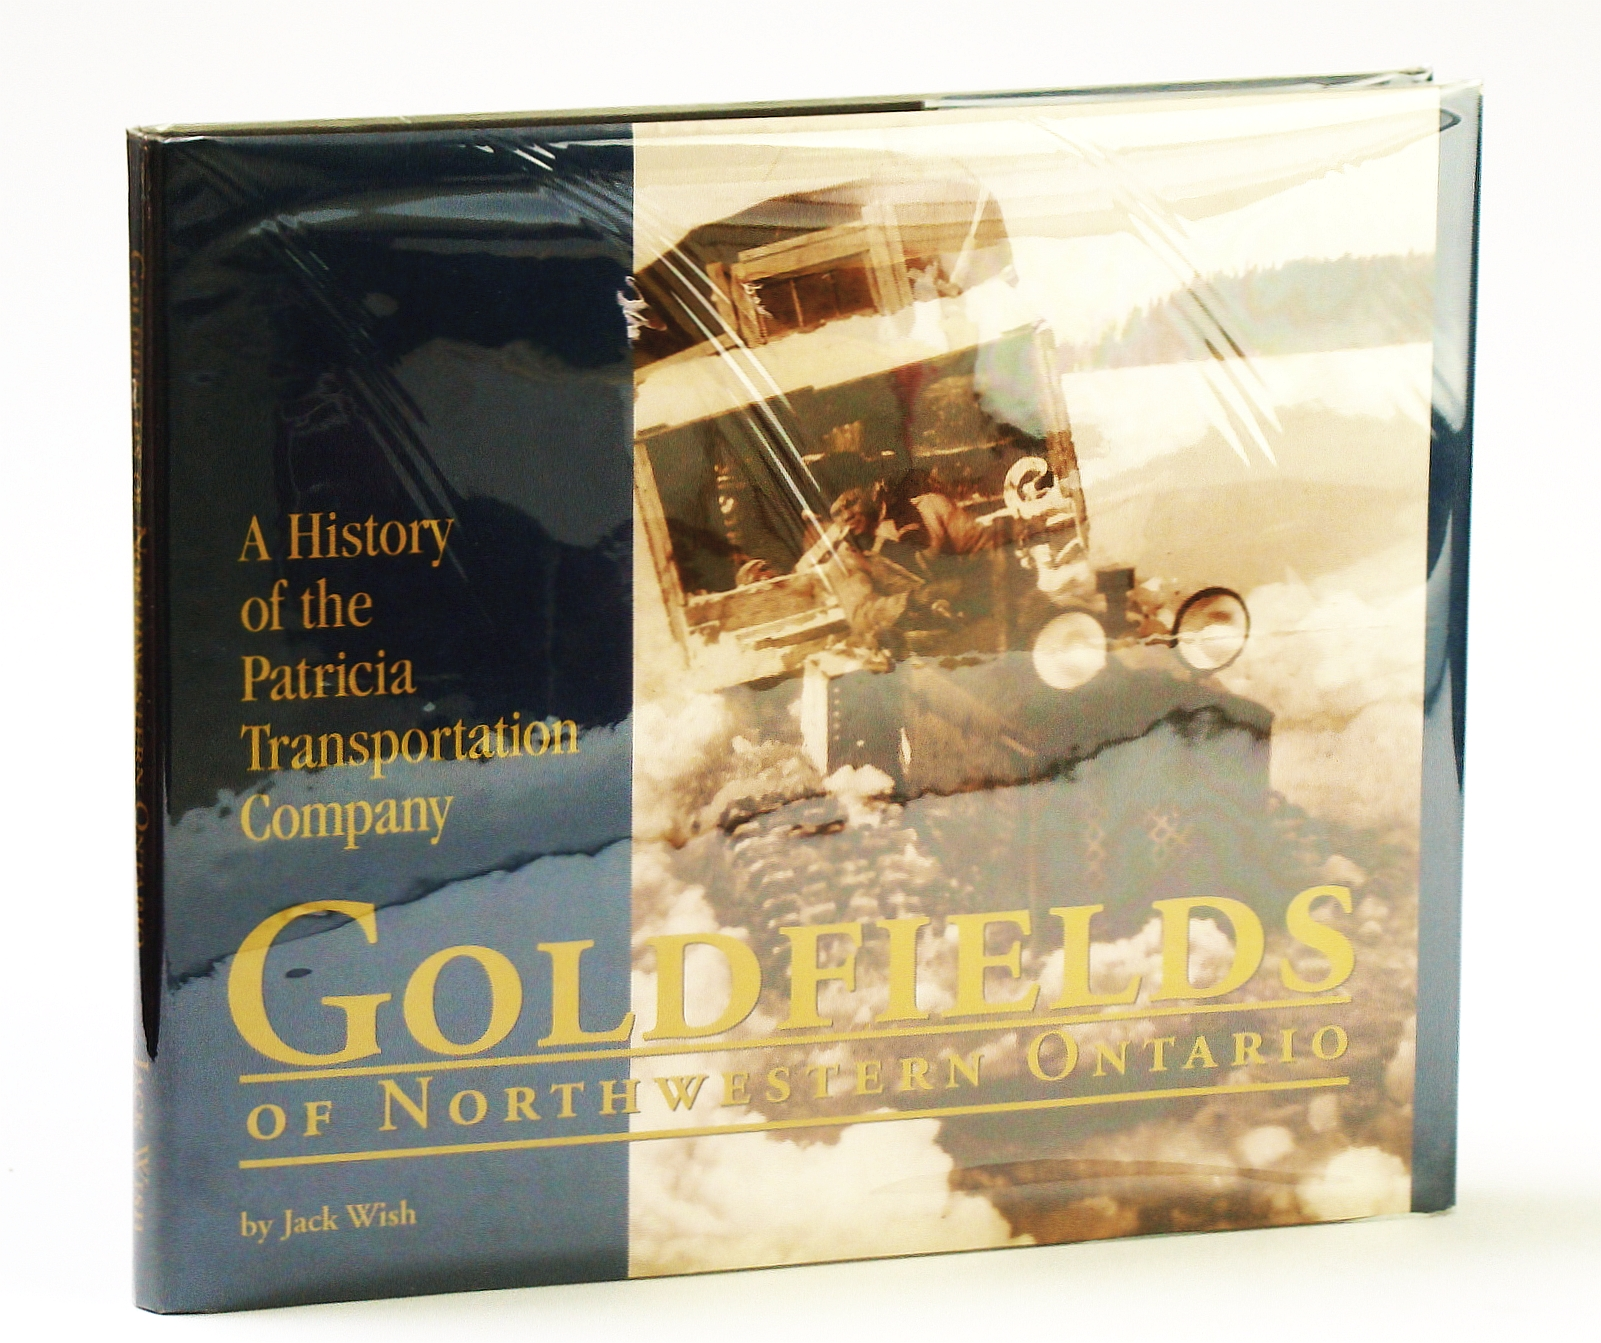 Image for Goldfields of northwestern Ontario: A history of the Patricia Transportation Company